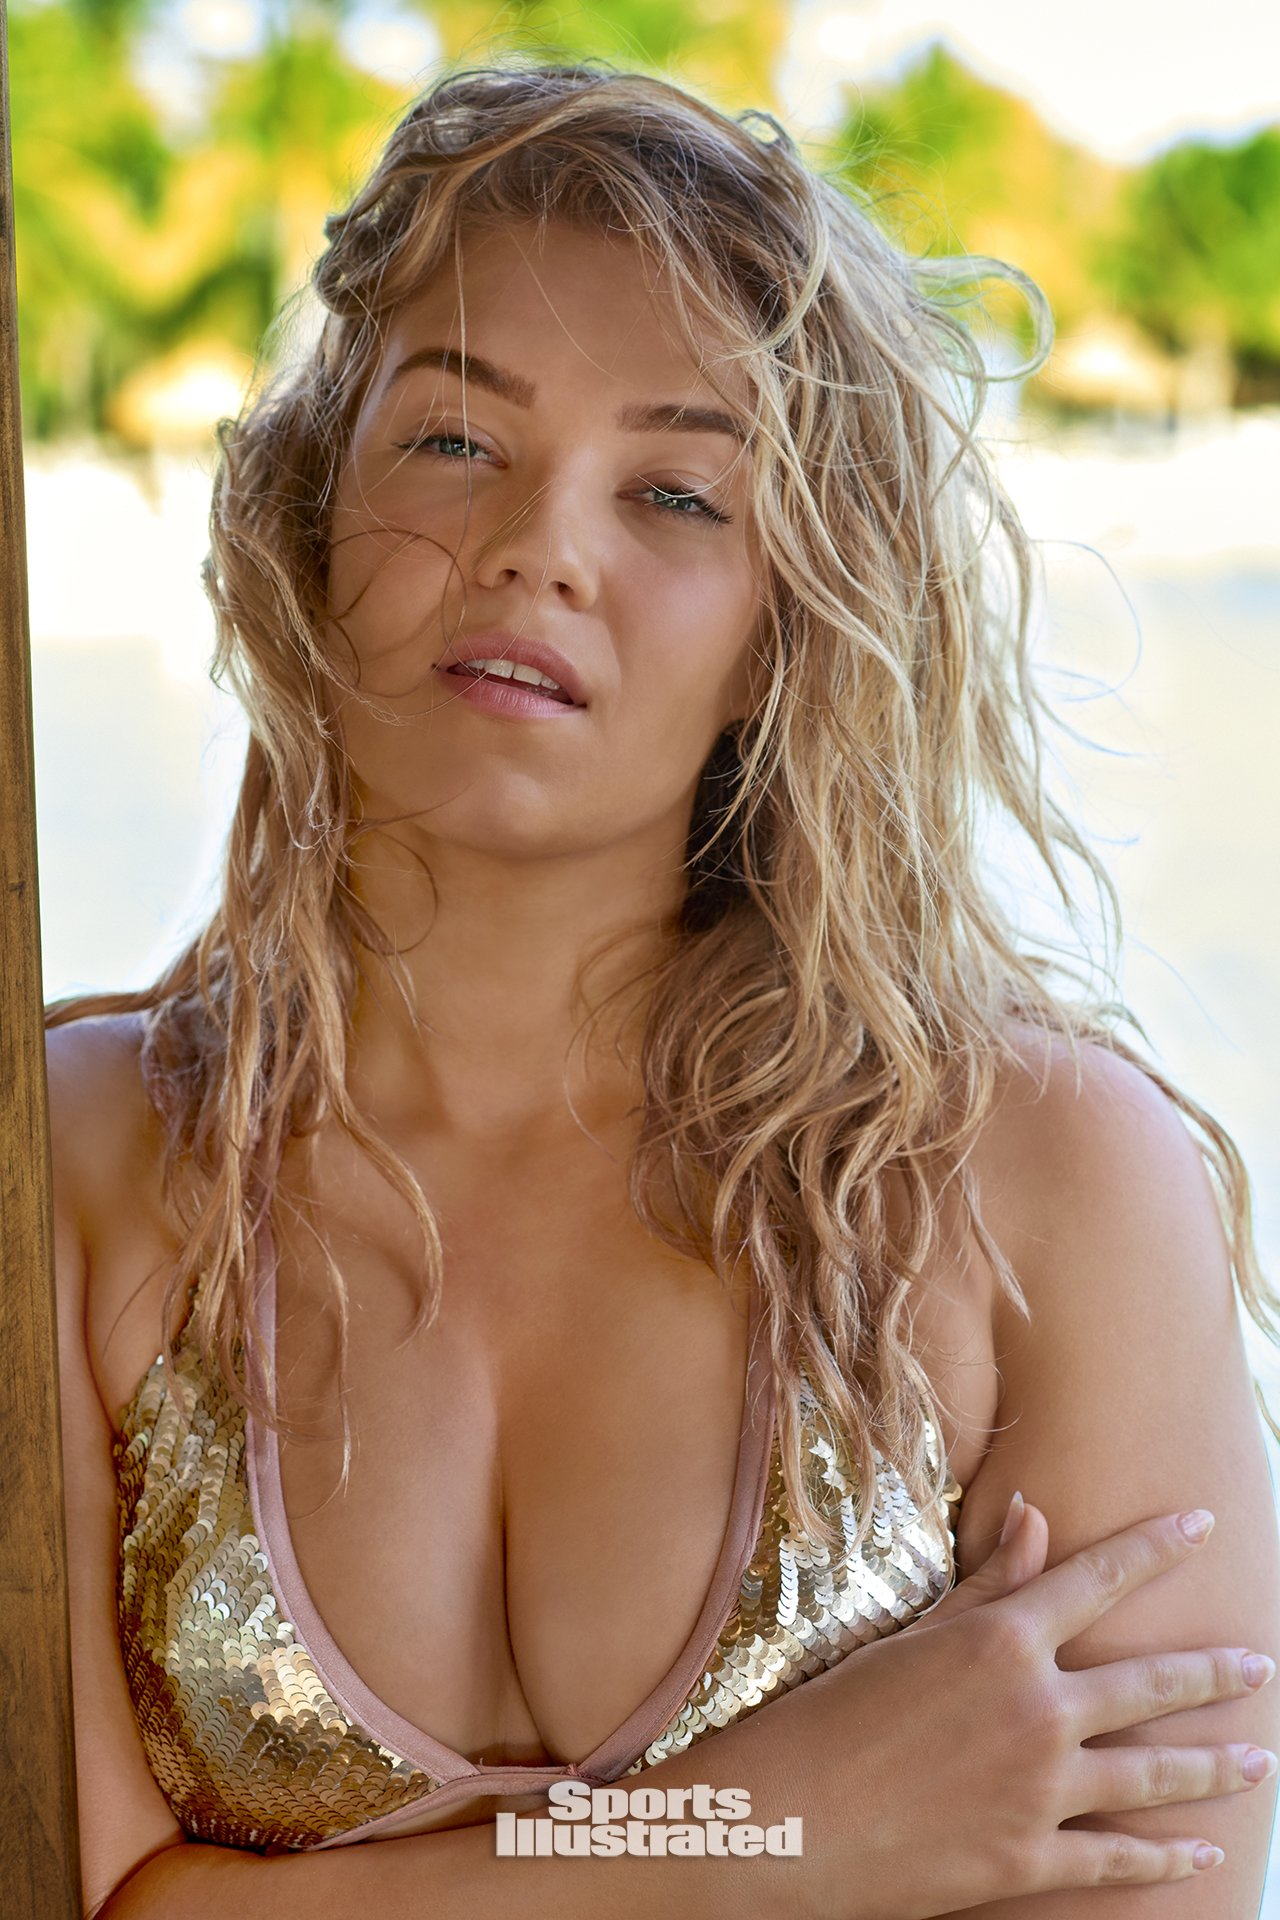 Sports Illustrated Swimsuit Issue 2018019.jpg